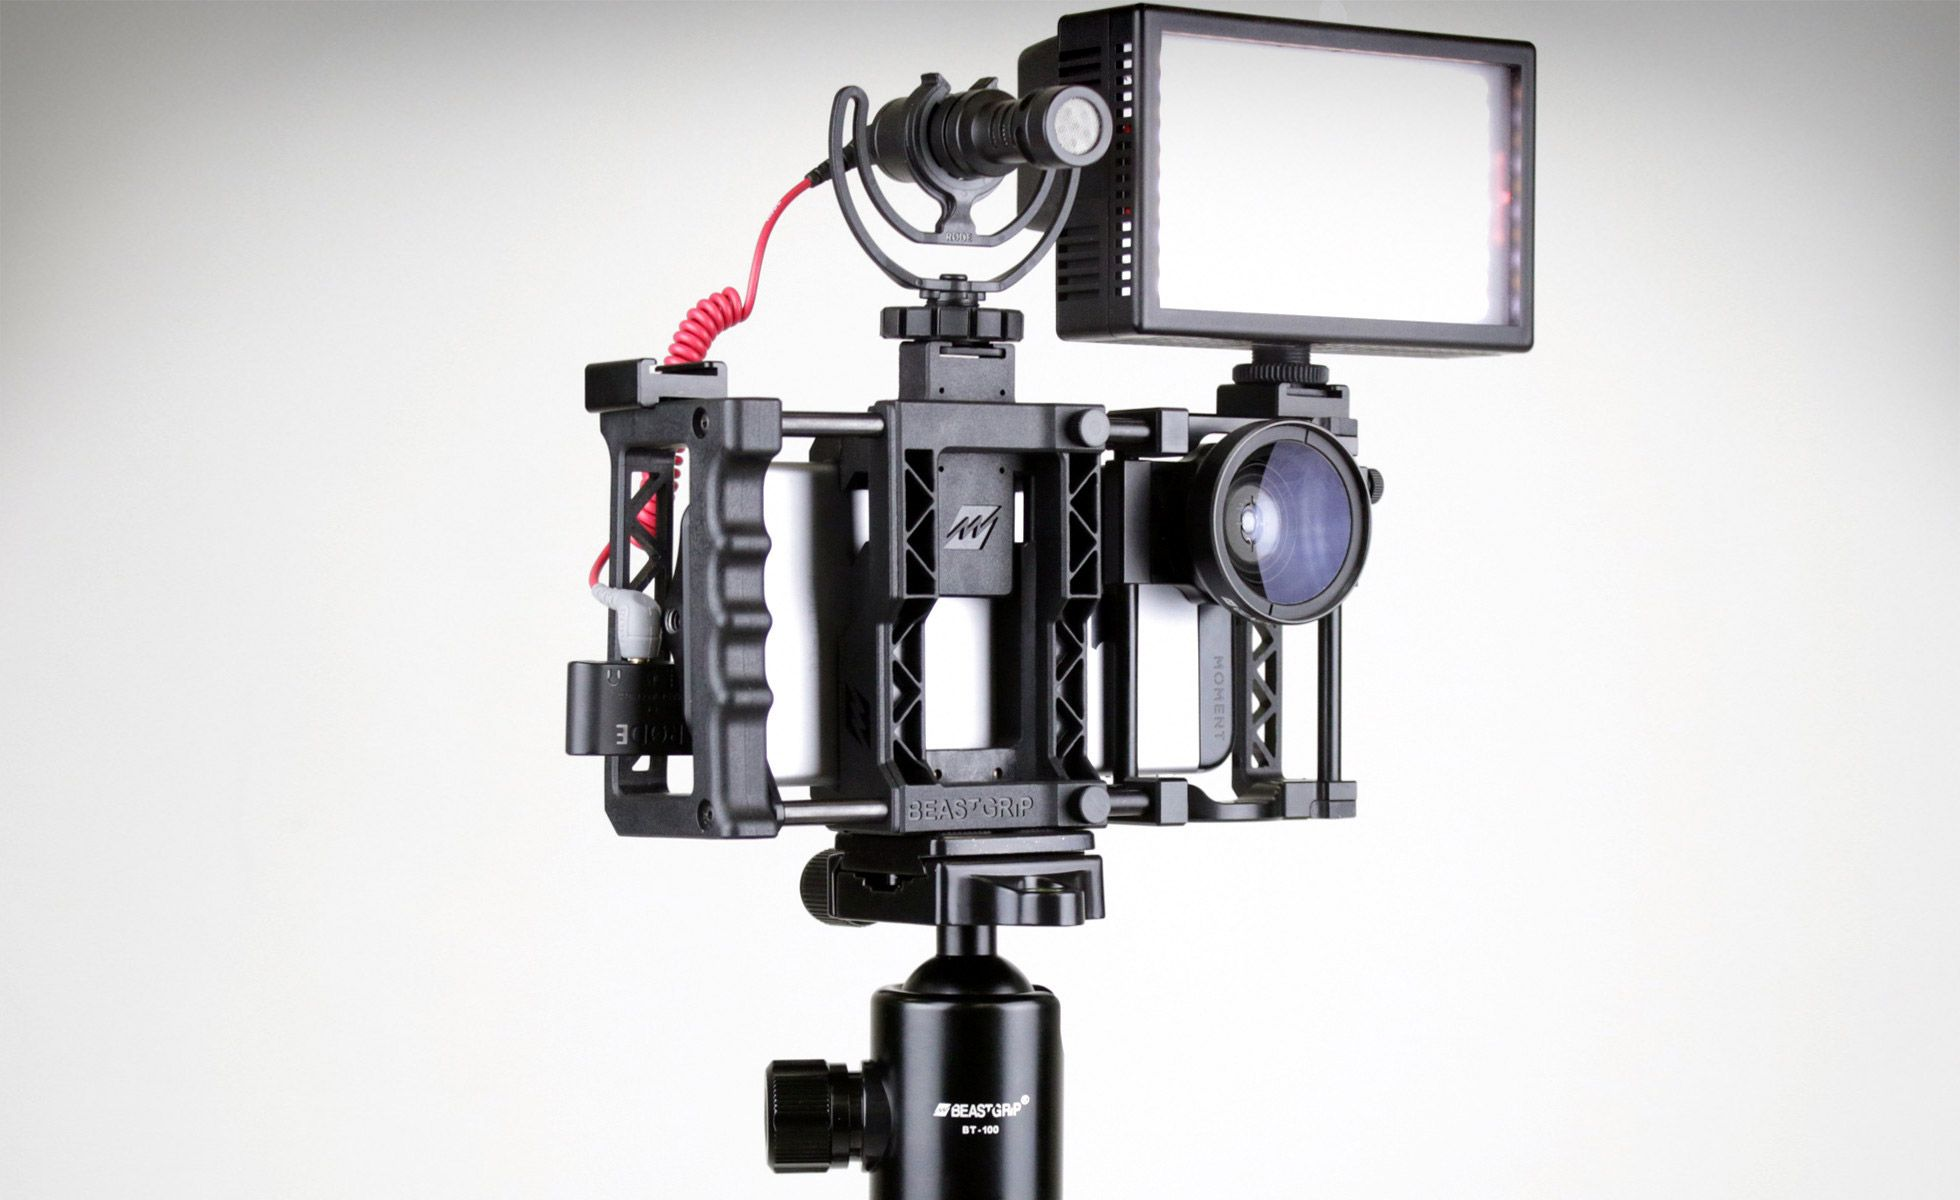 Beastgrip Pro (With images) | Smartphone photography. Camera rig. Iphone camera